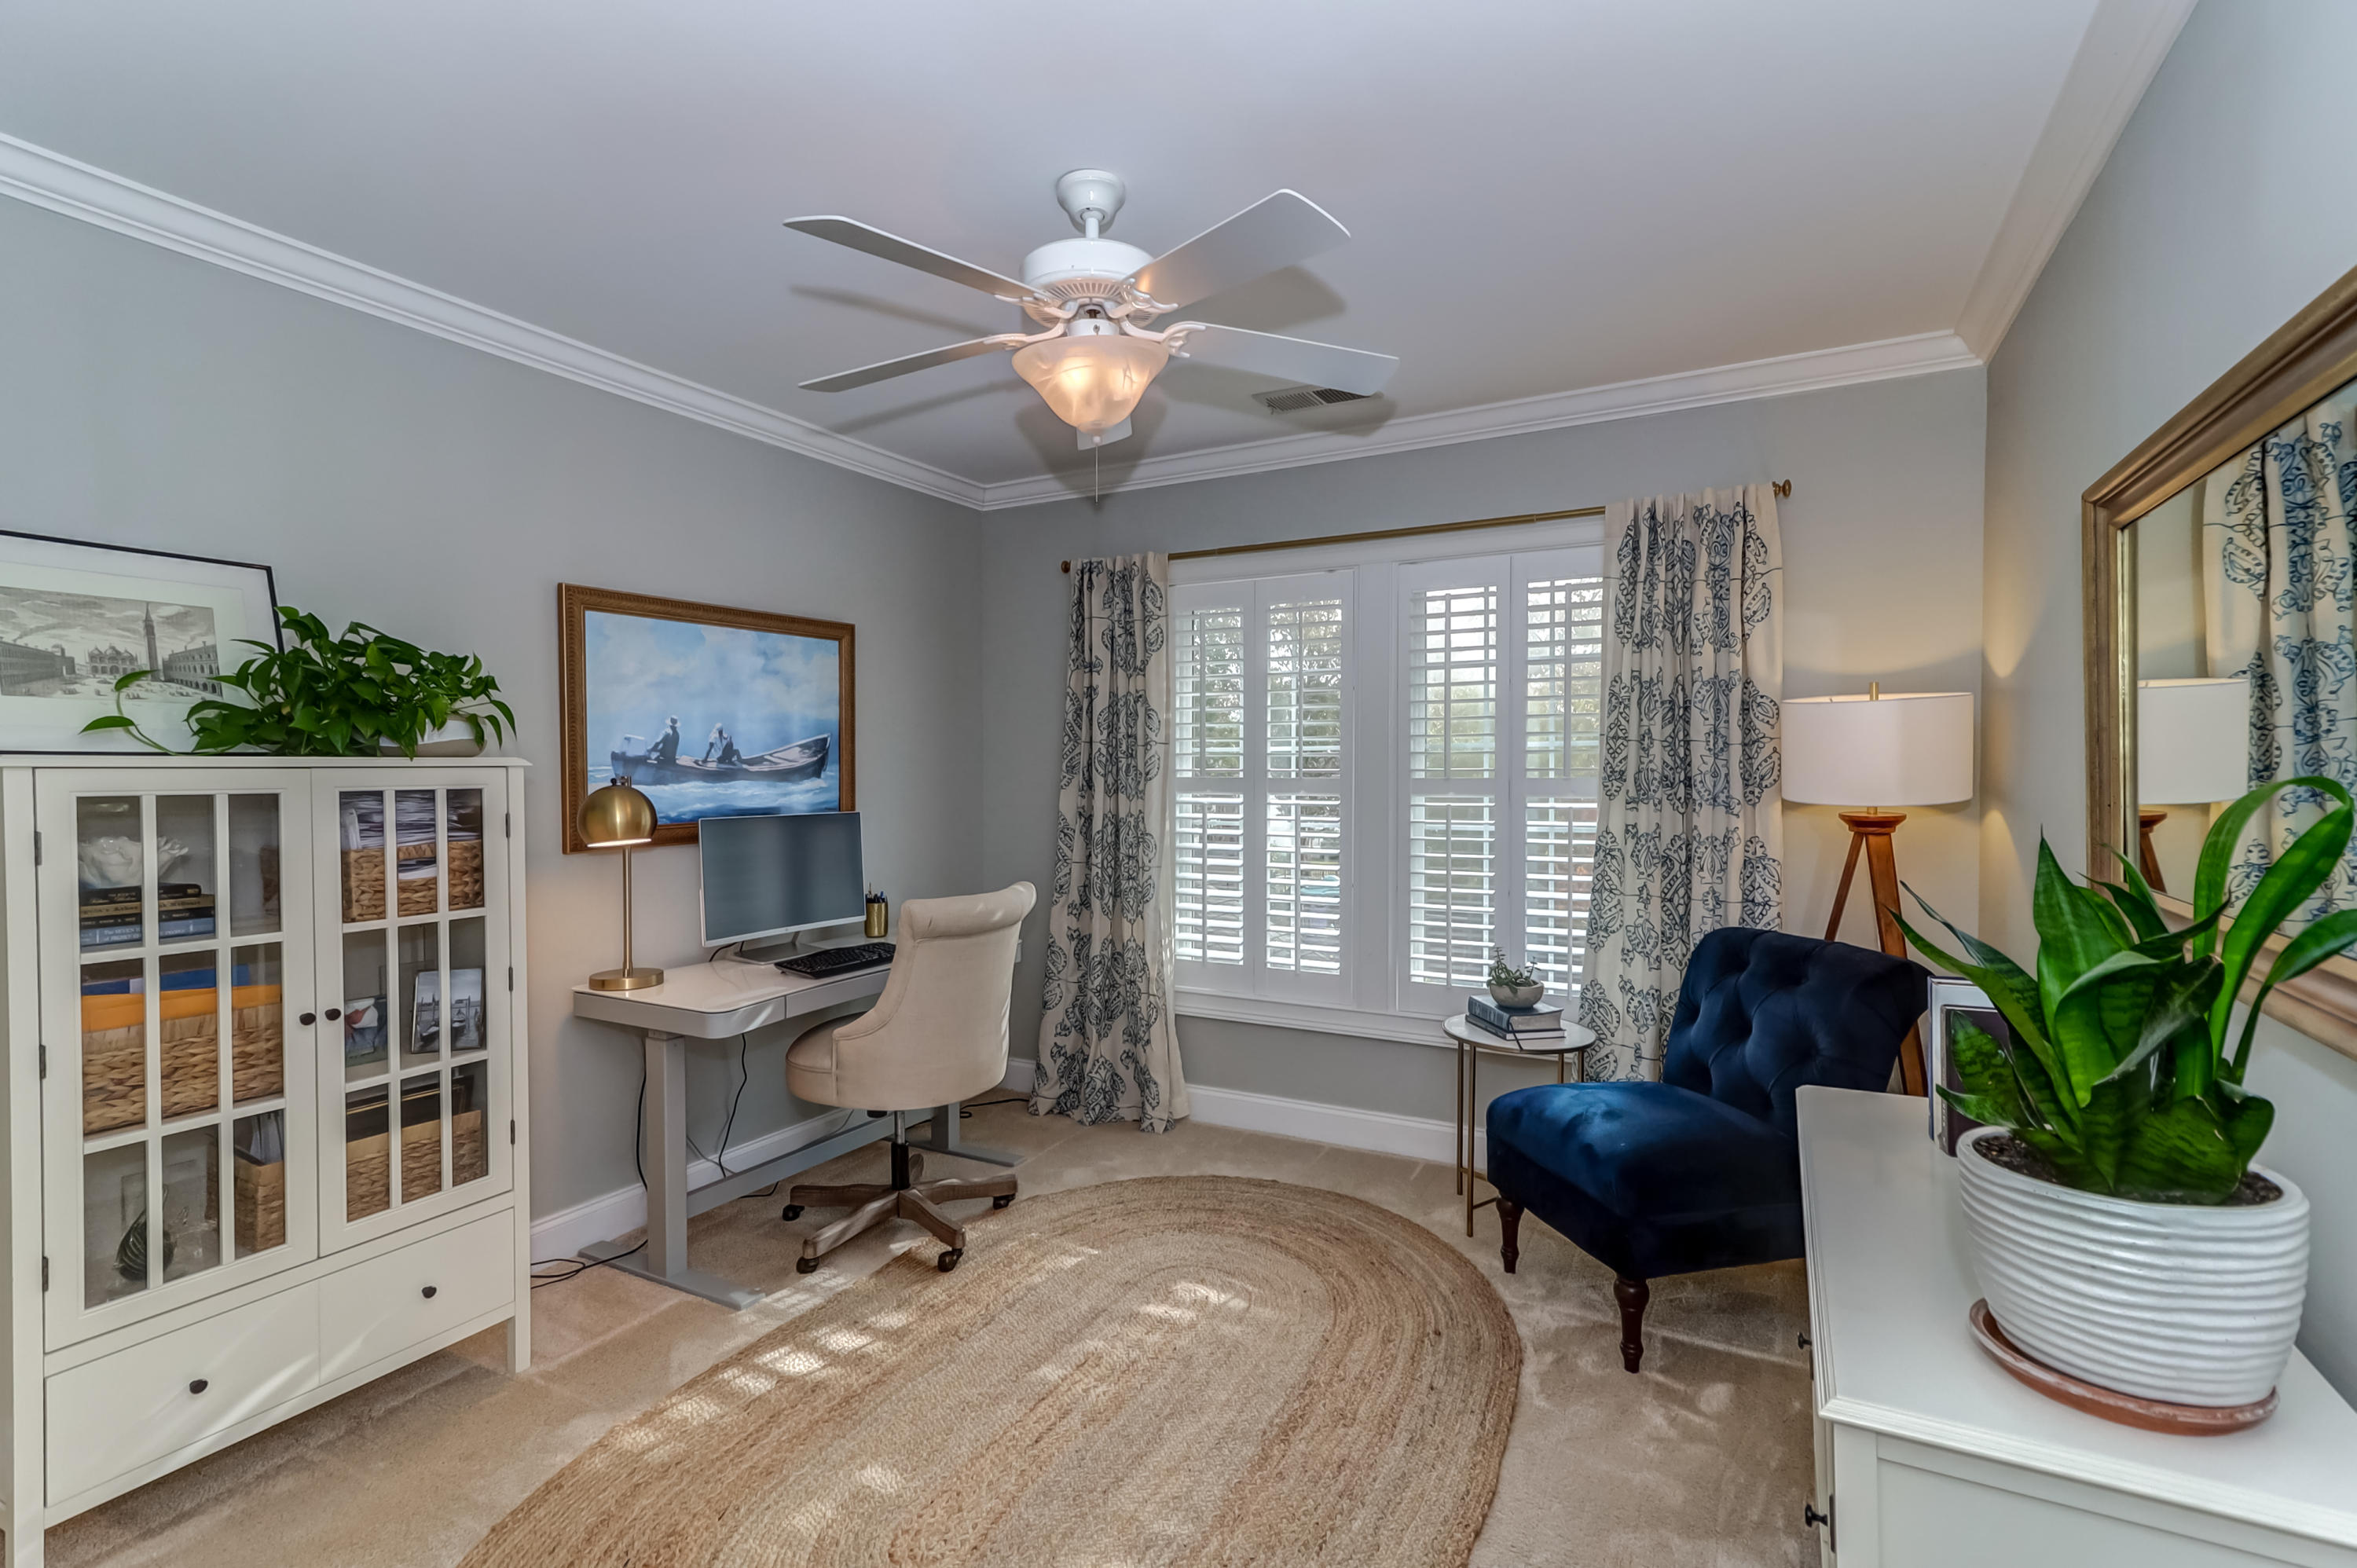 Woodward Pointe Homes For Sale - 657 White Chapel, Charleston, SC - 21